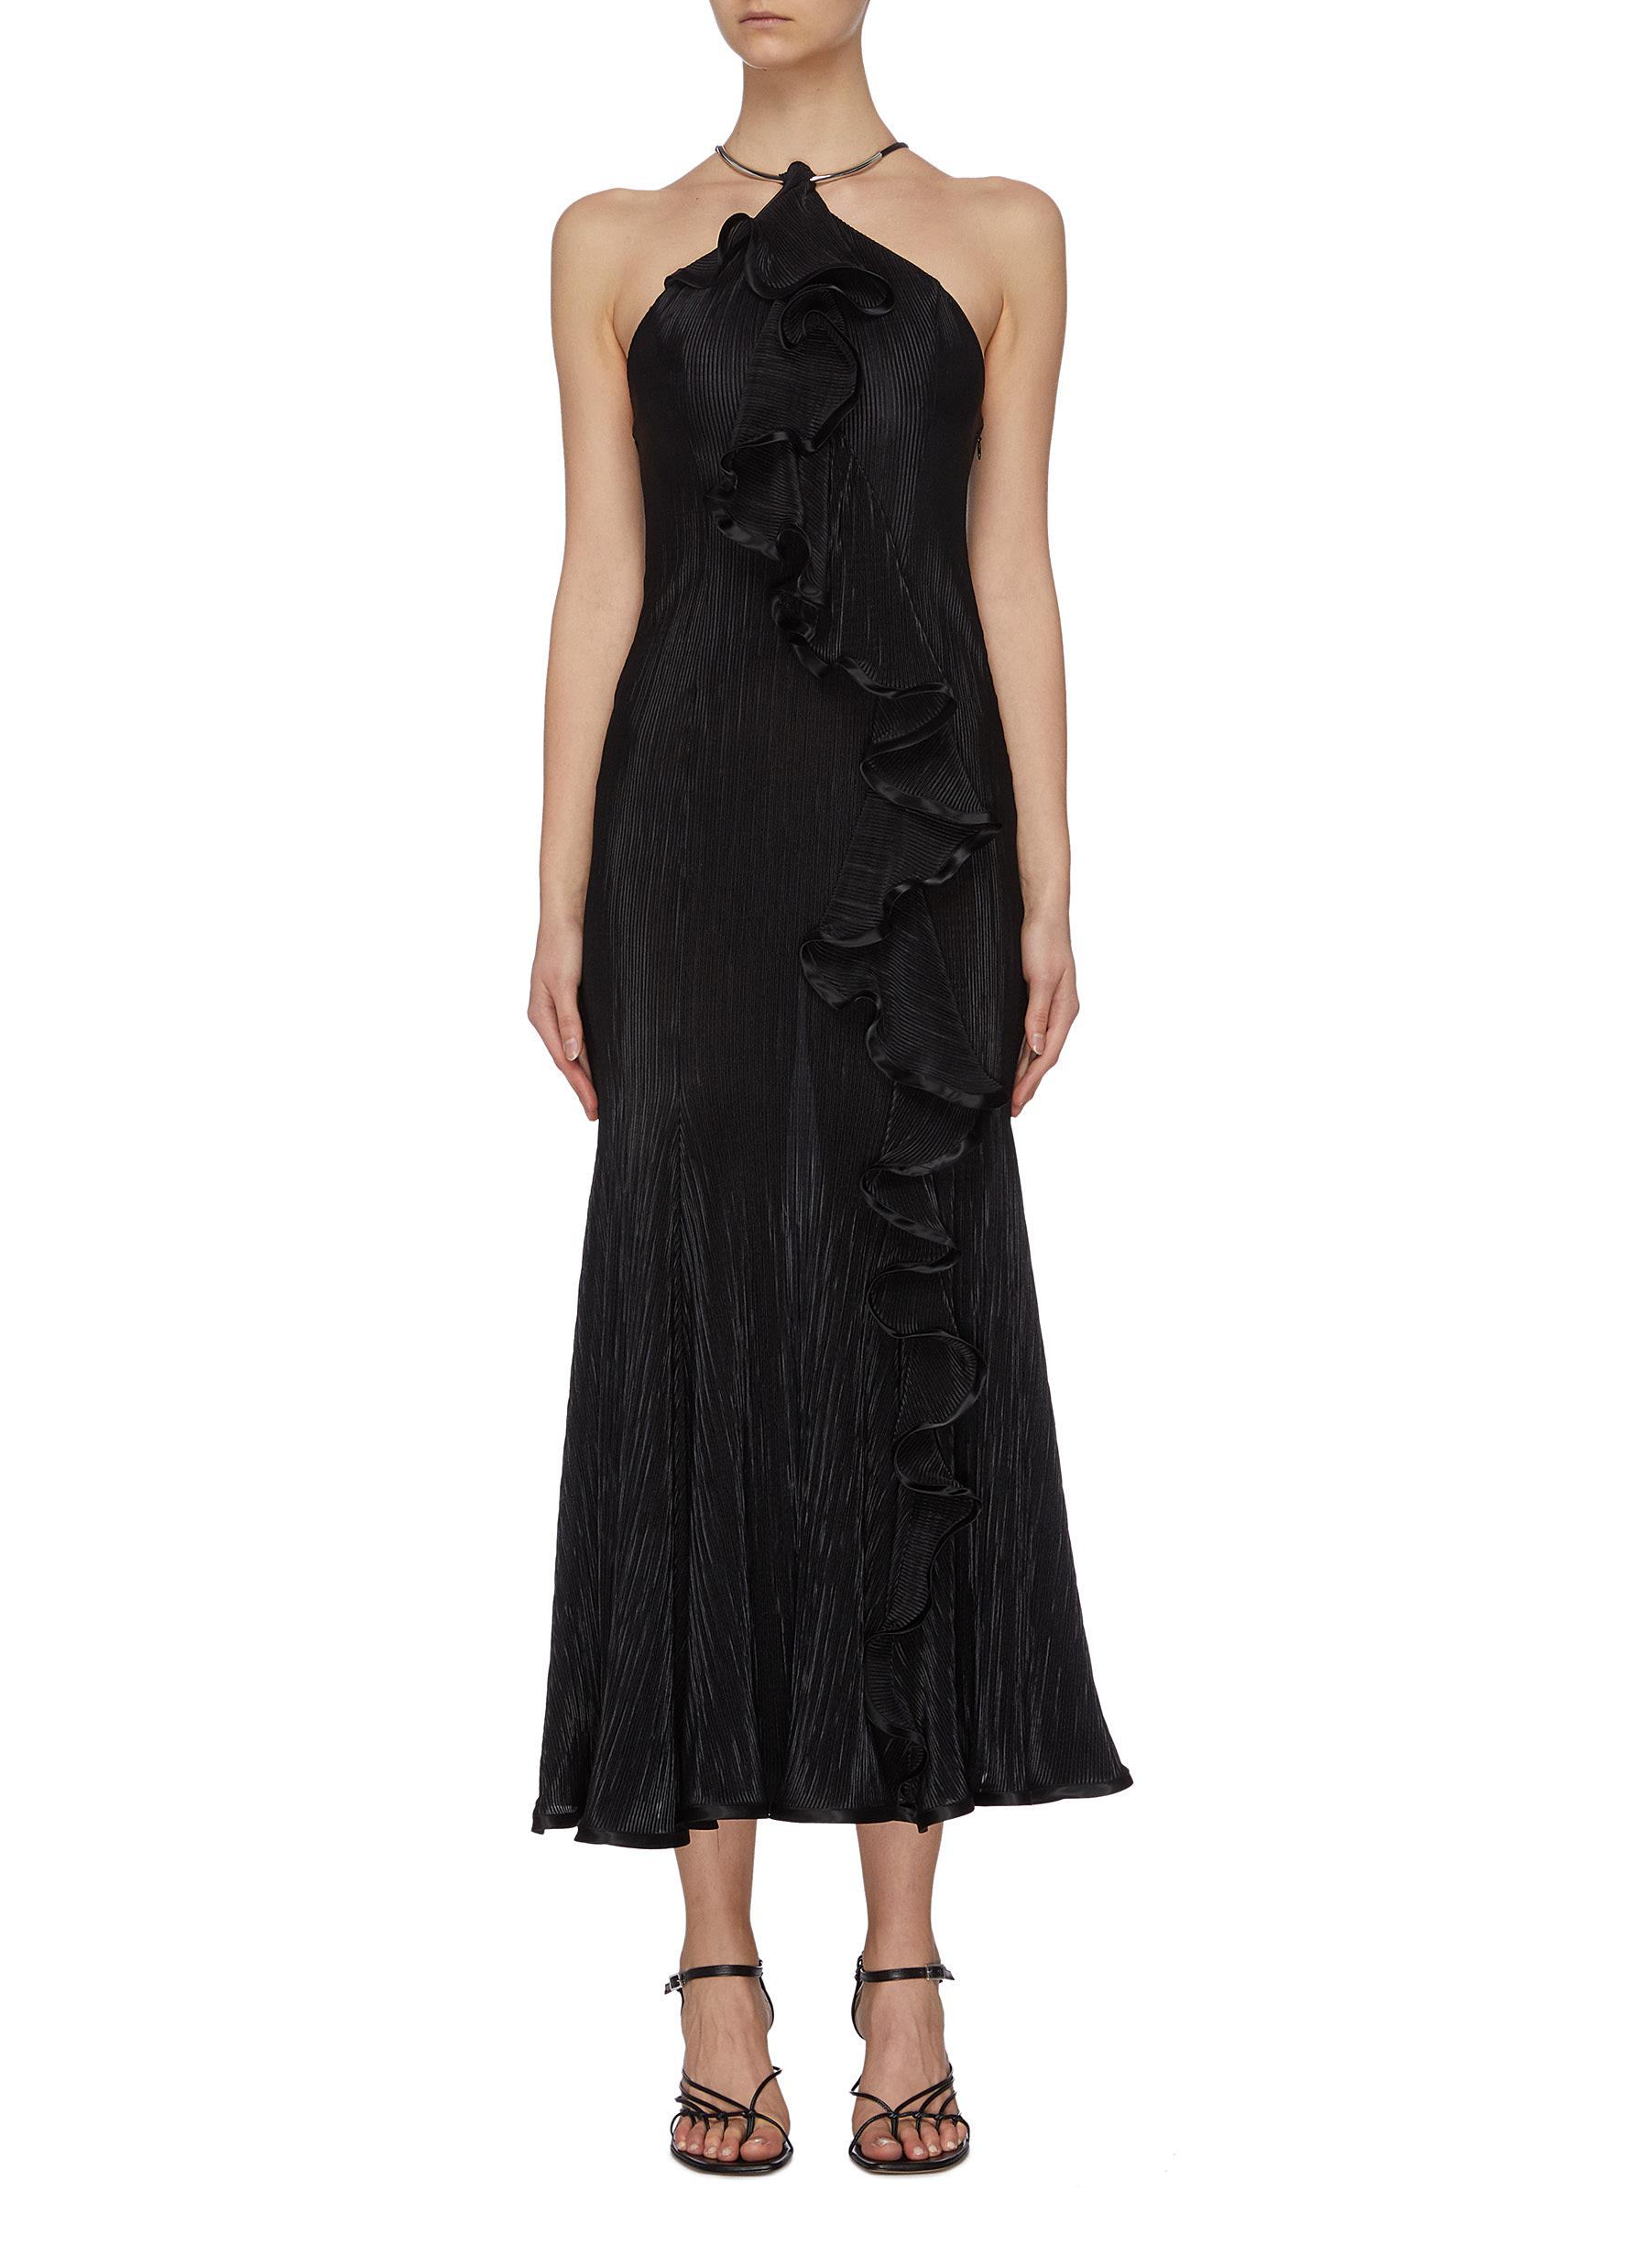 Buy Galvan London Dresses 'Pirouette' pleated ruffle midi dress